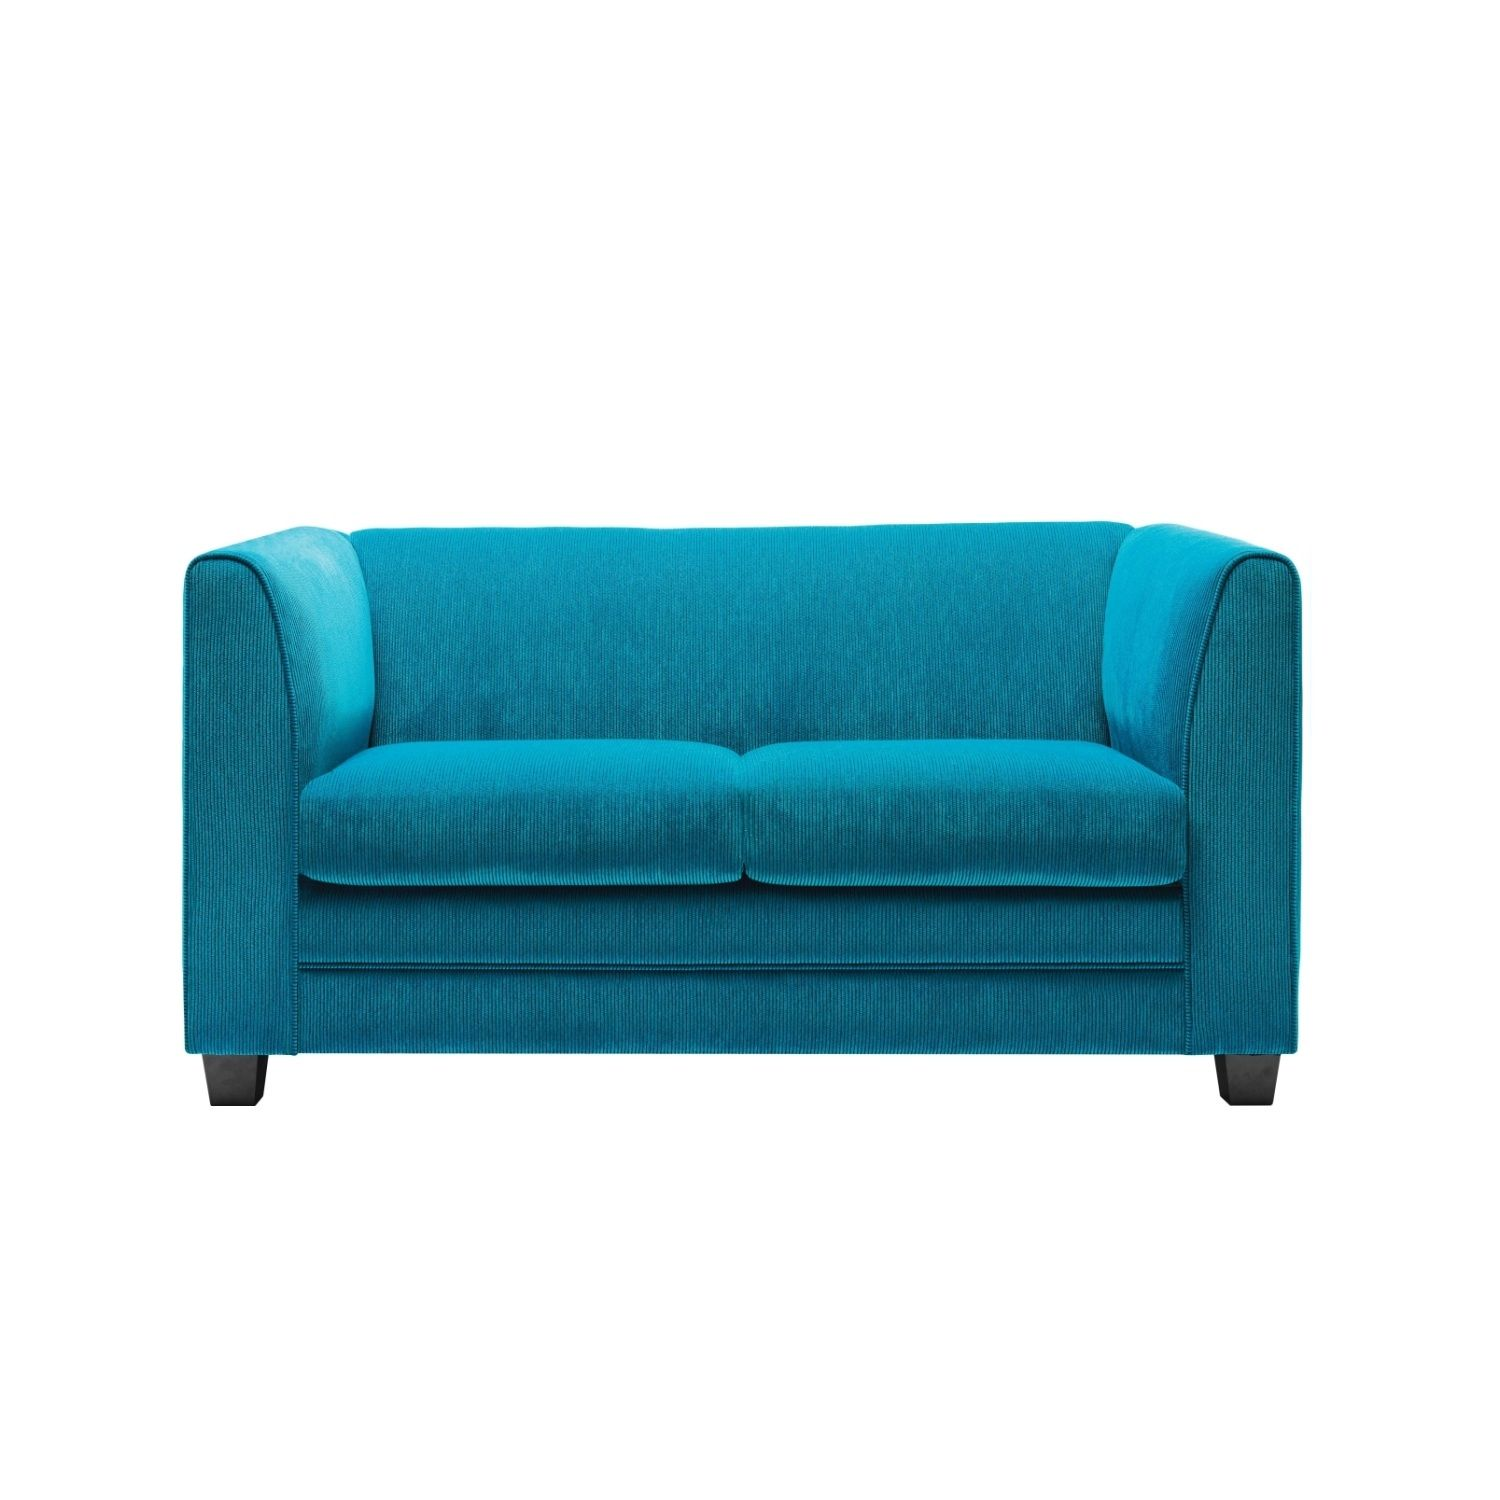 Domayne Furniture Fabric Lounges Tutti Frutti Fabric Sofa From Domayne Online Sofas Sofa